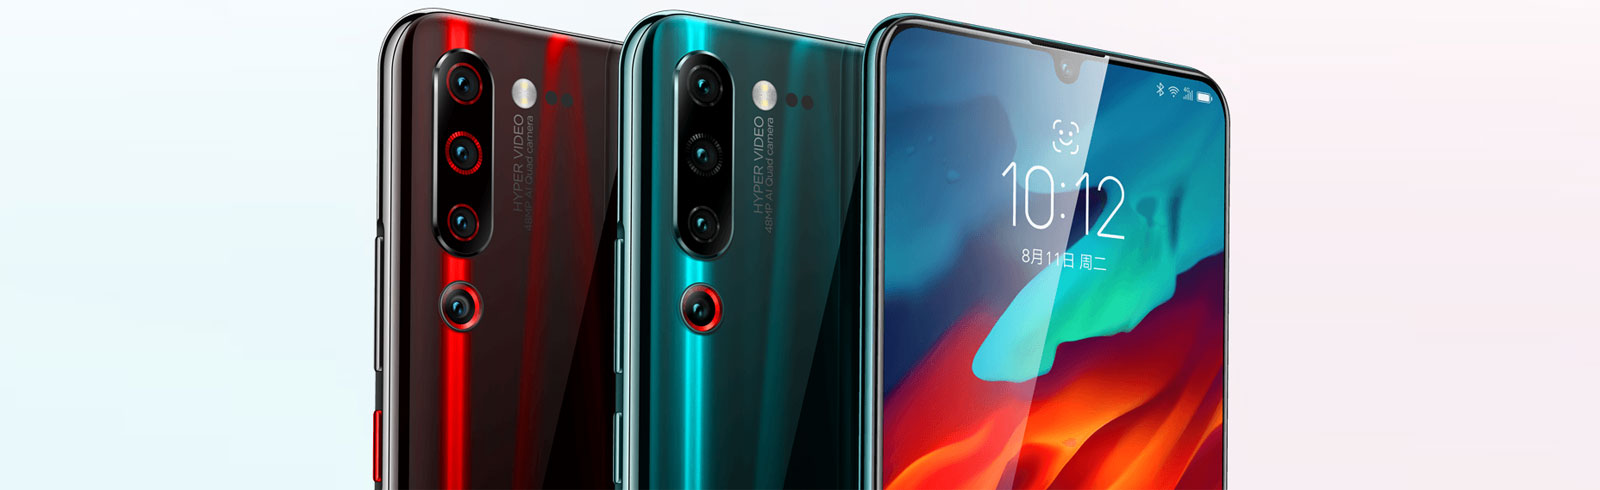 Lenovo Z6 Pro is announced with Snapdragon 855, 12GB of RAM, four cameras